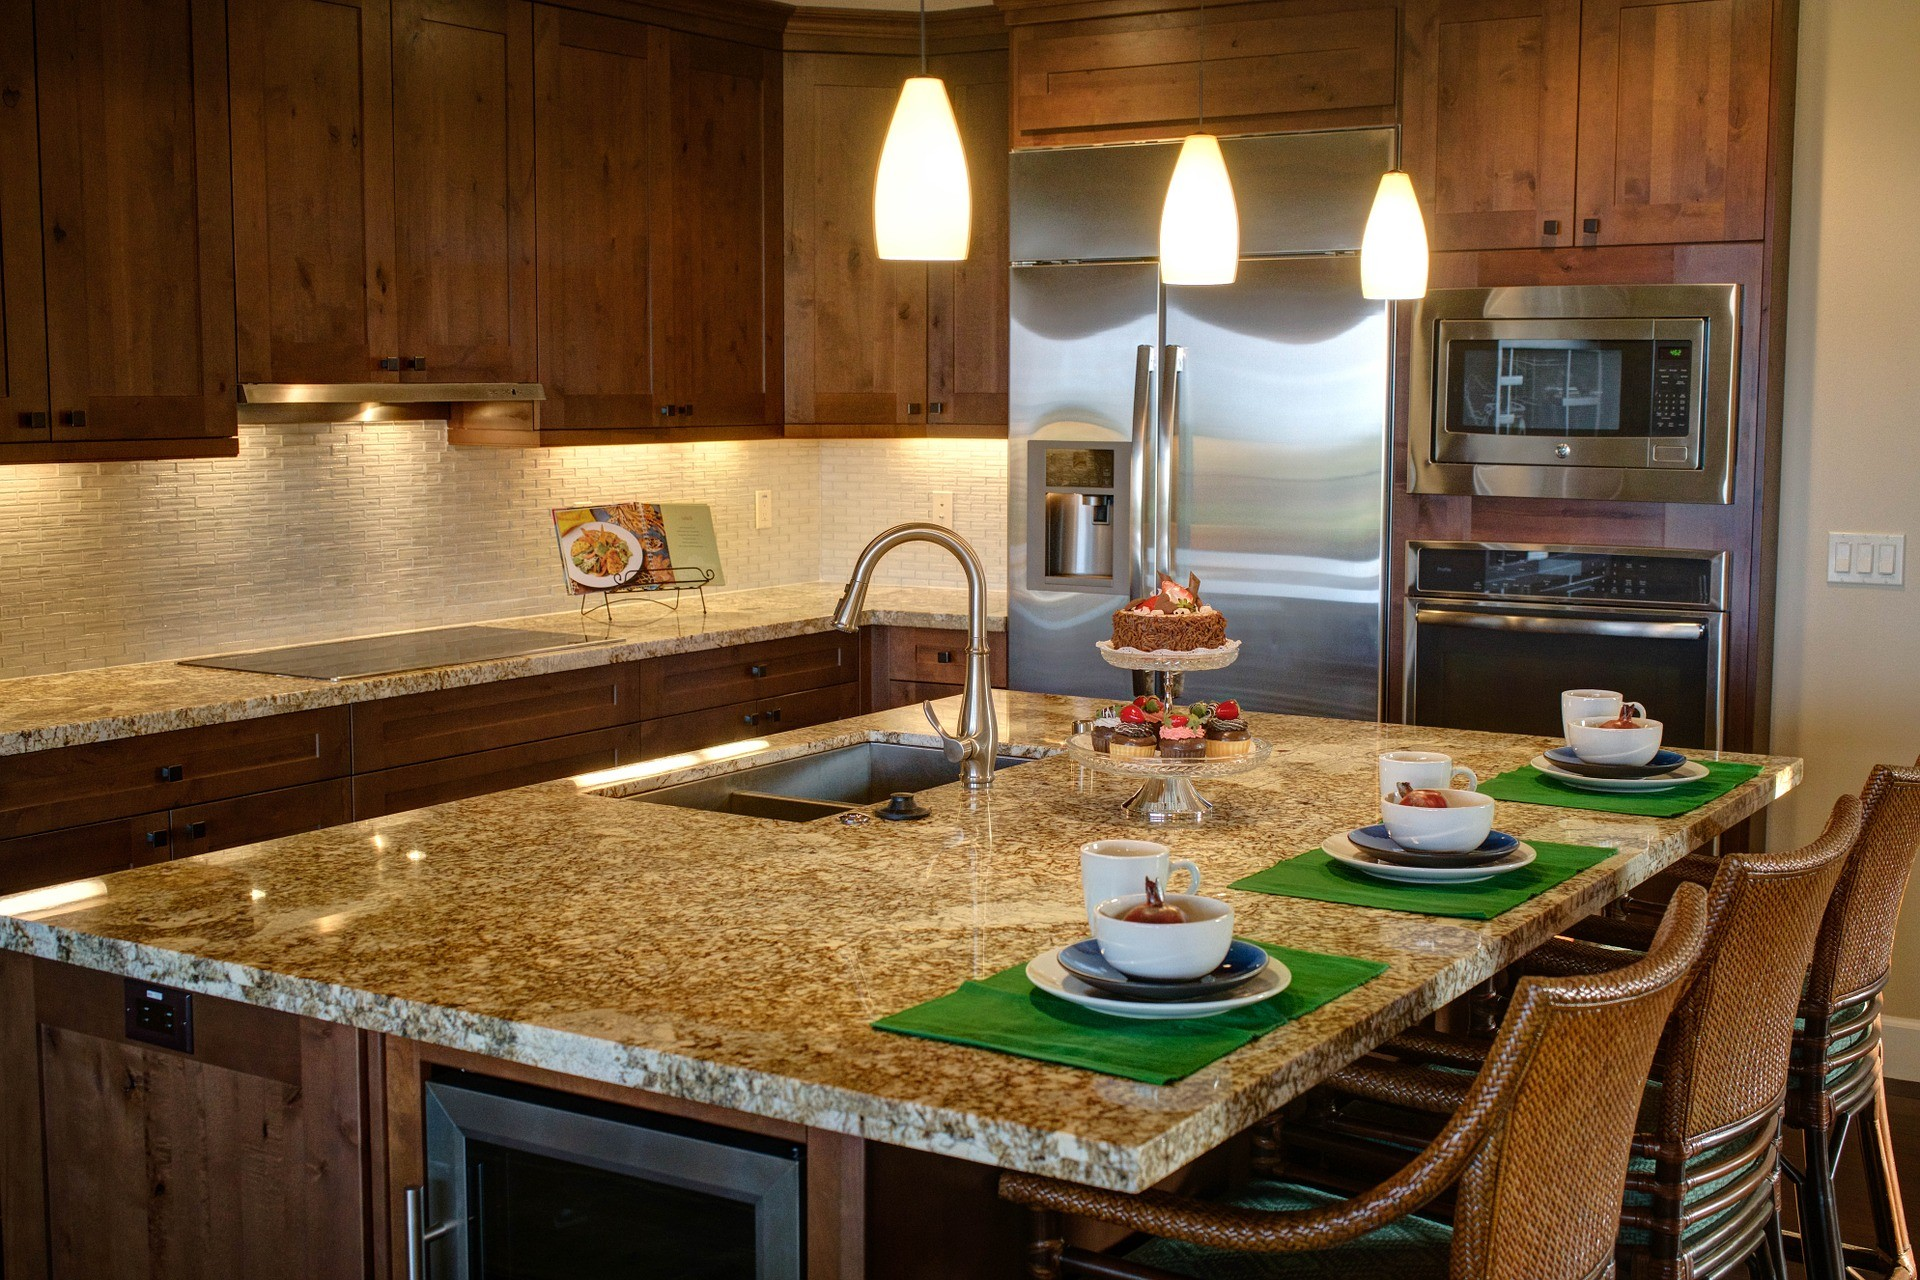 Nashville Kitchen & Custom Bath Home Remodeling Pros- best countertops, bathrooms, renovations, custom cabinets, home additions- 81